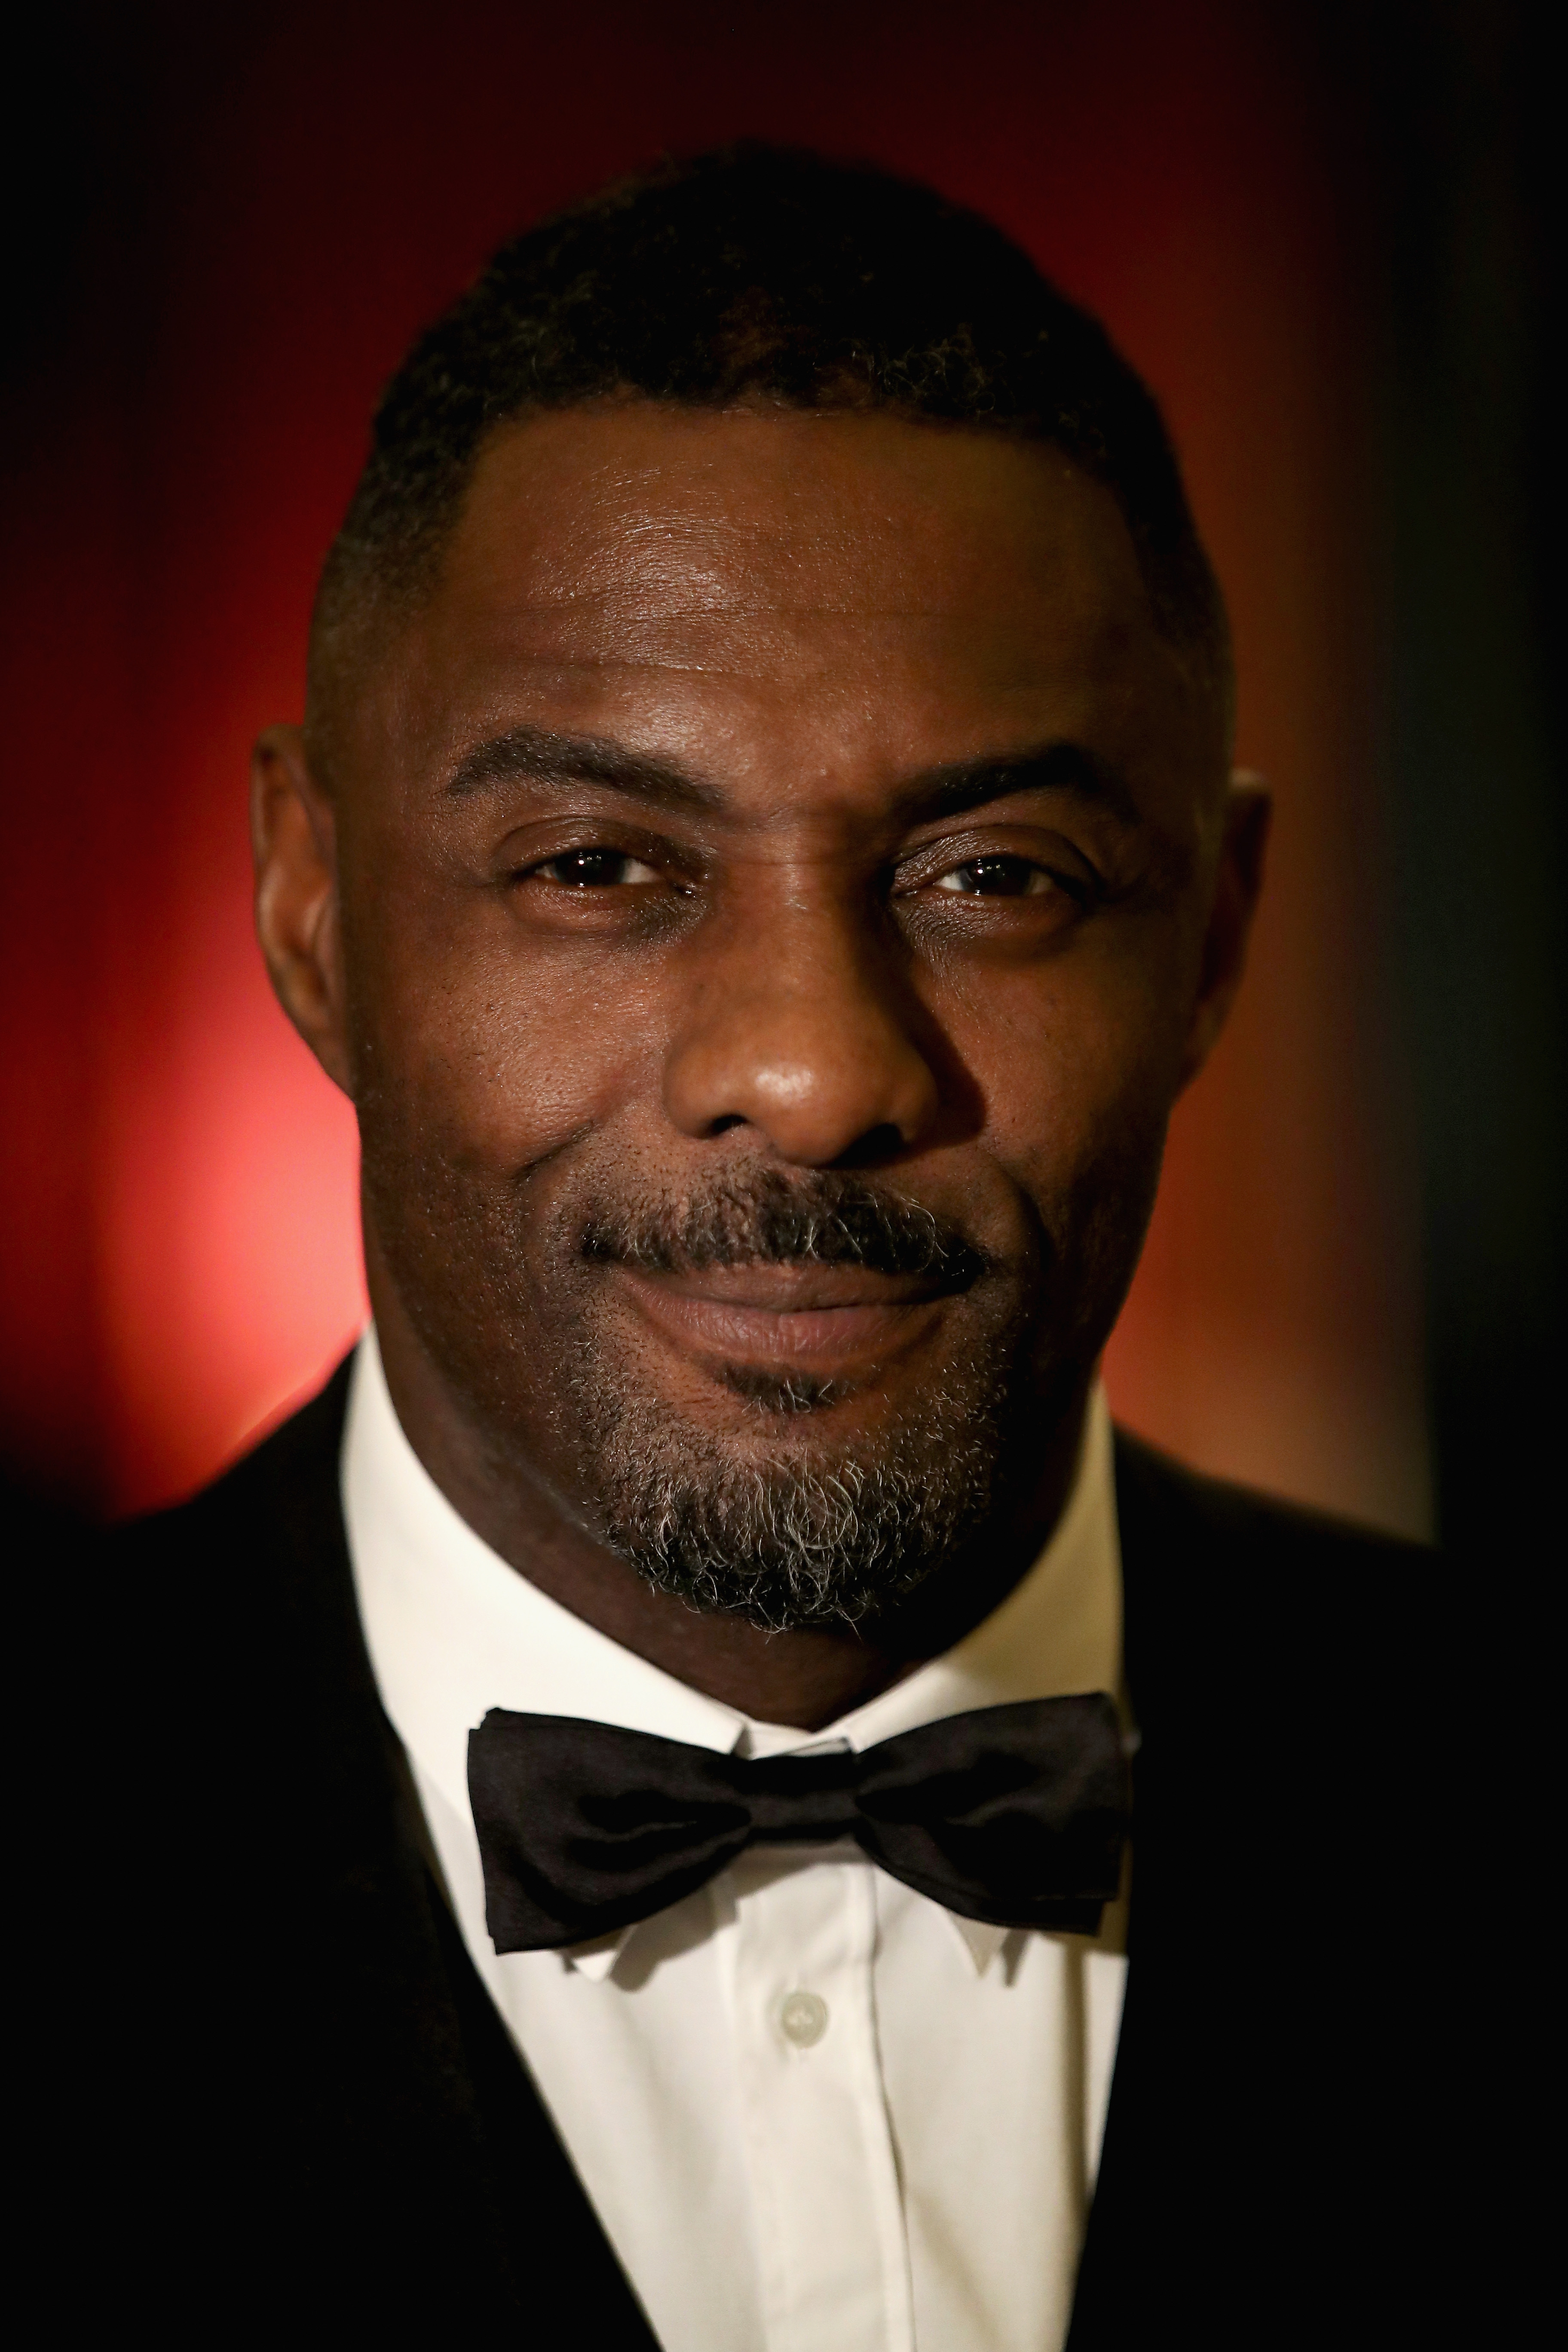 Actor Idris Elba named People's Sexiest Man Alive (Getty Images)